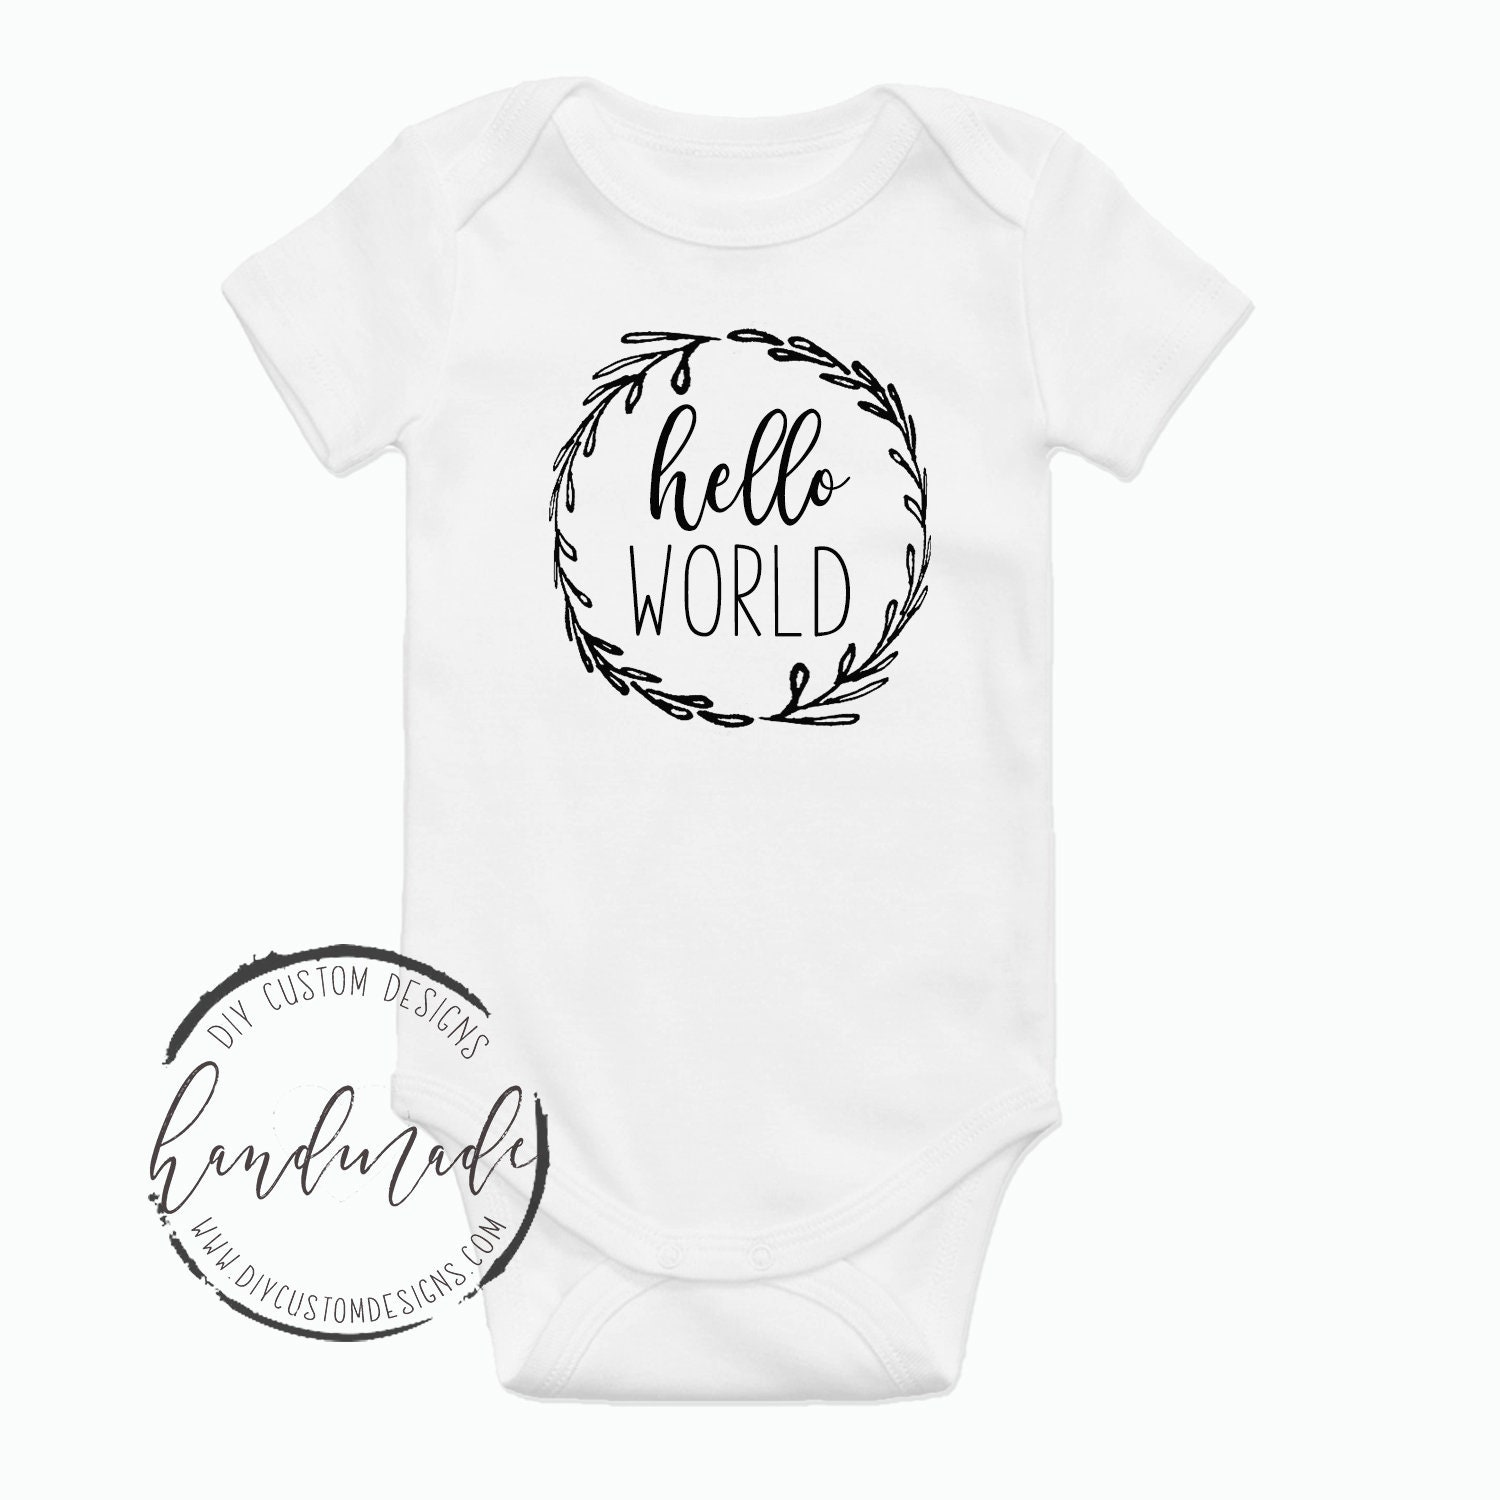 c6ba6e514 Hello World Baby Onesies®, Coming Home Outfit, Gender Neutral, Baby  Bodysuit, Newborn Baby Gift, Hospital take home outfit